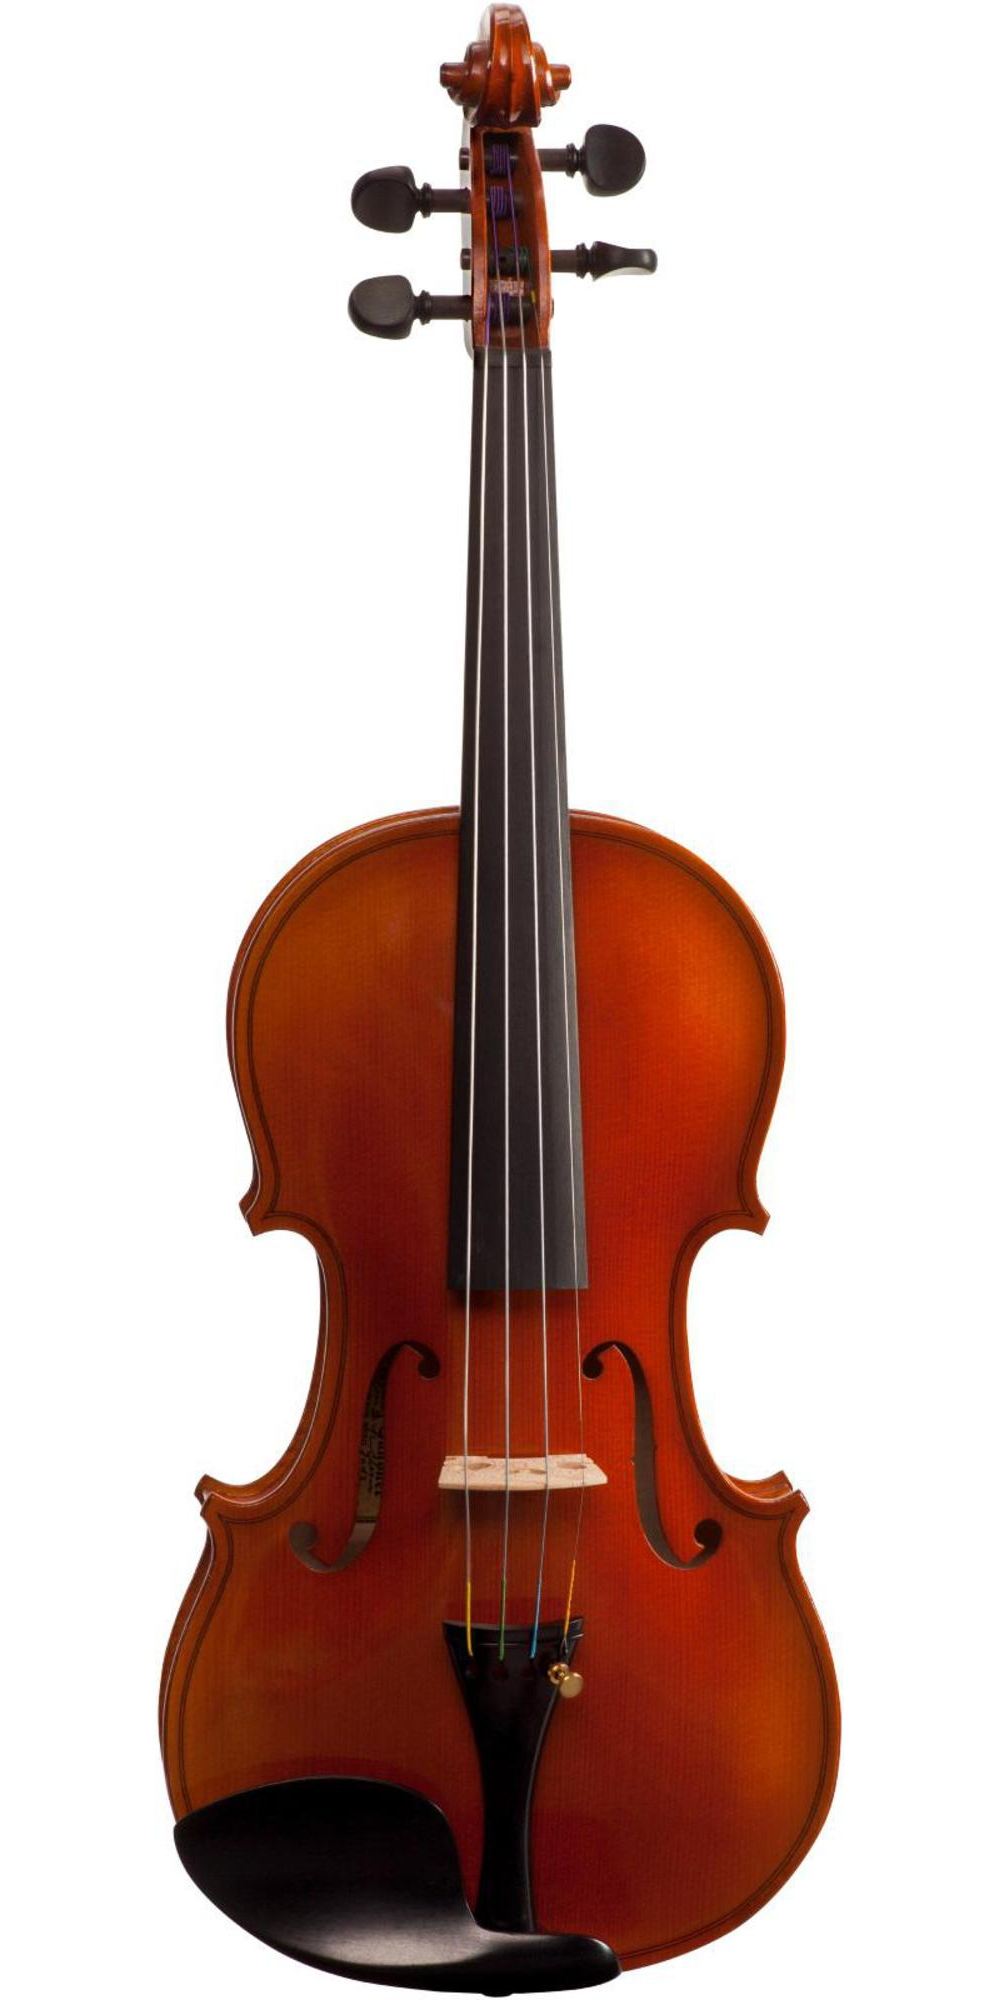 Bellafina Bavarian Series Violin Outfit 4 4 Size by Bellafina